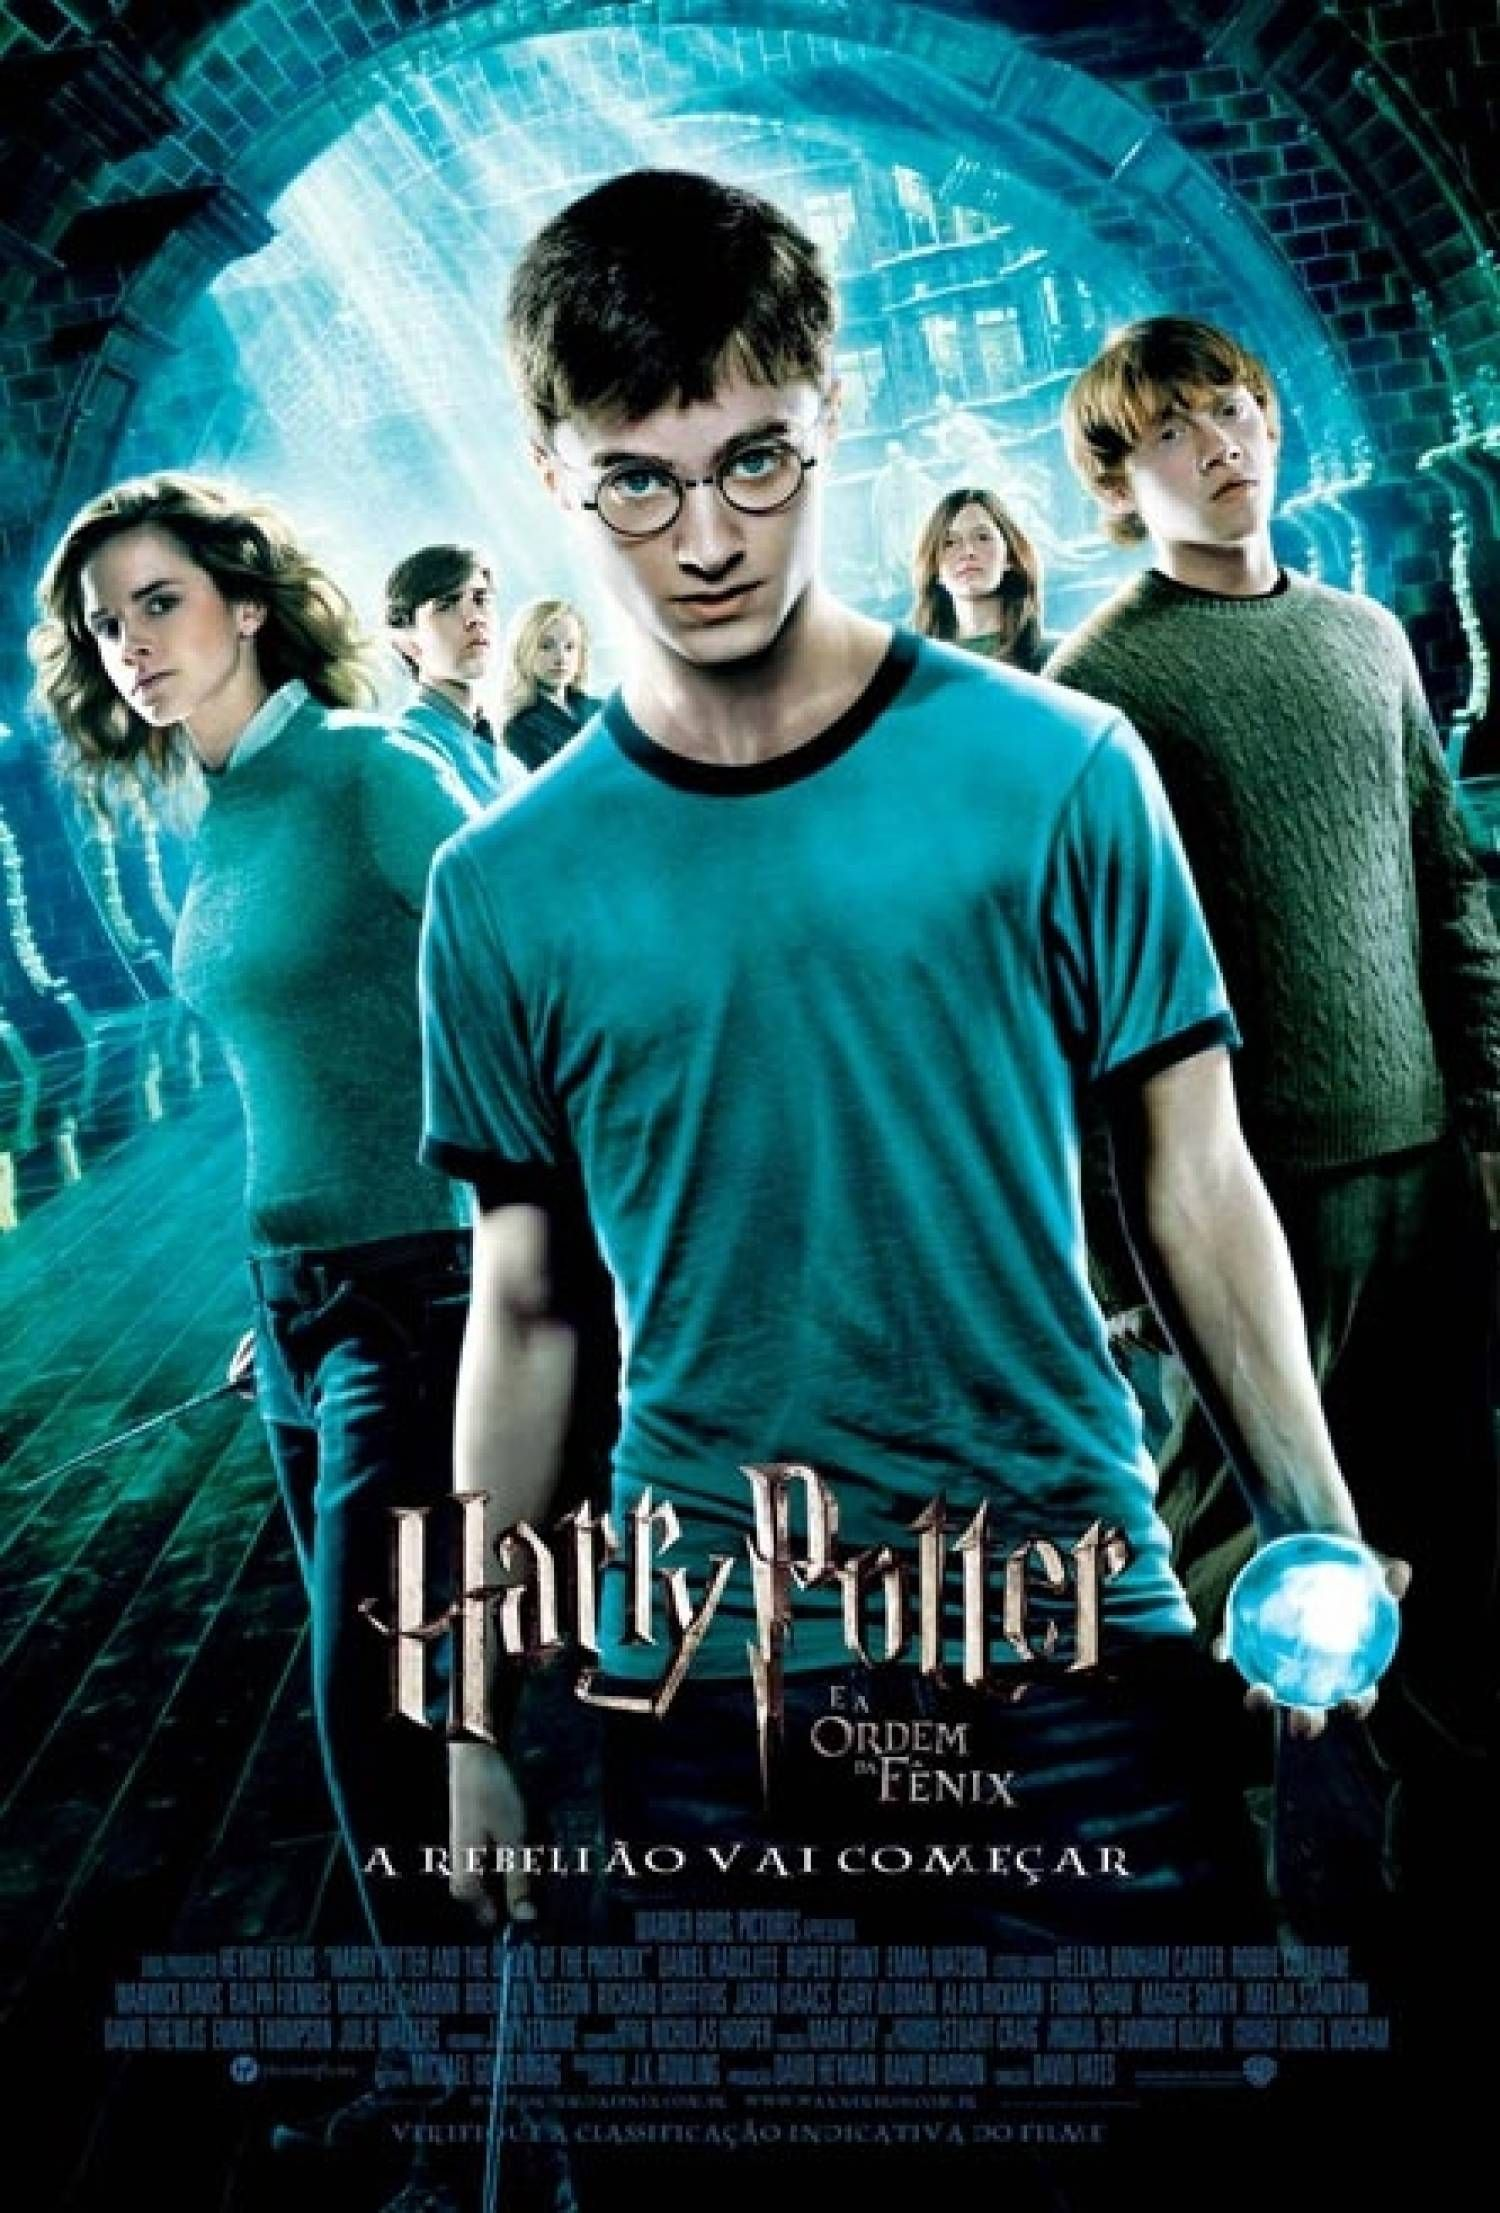 Harry Potter 5 Assistir Online Harry Potter Harry Potter Filme Cartaz Harry Potter